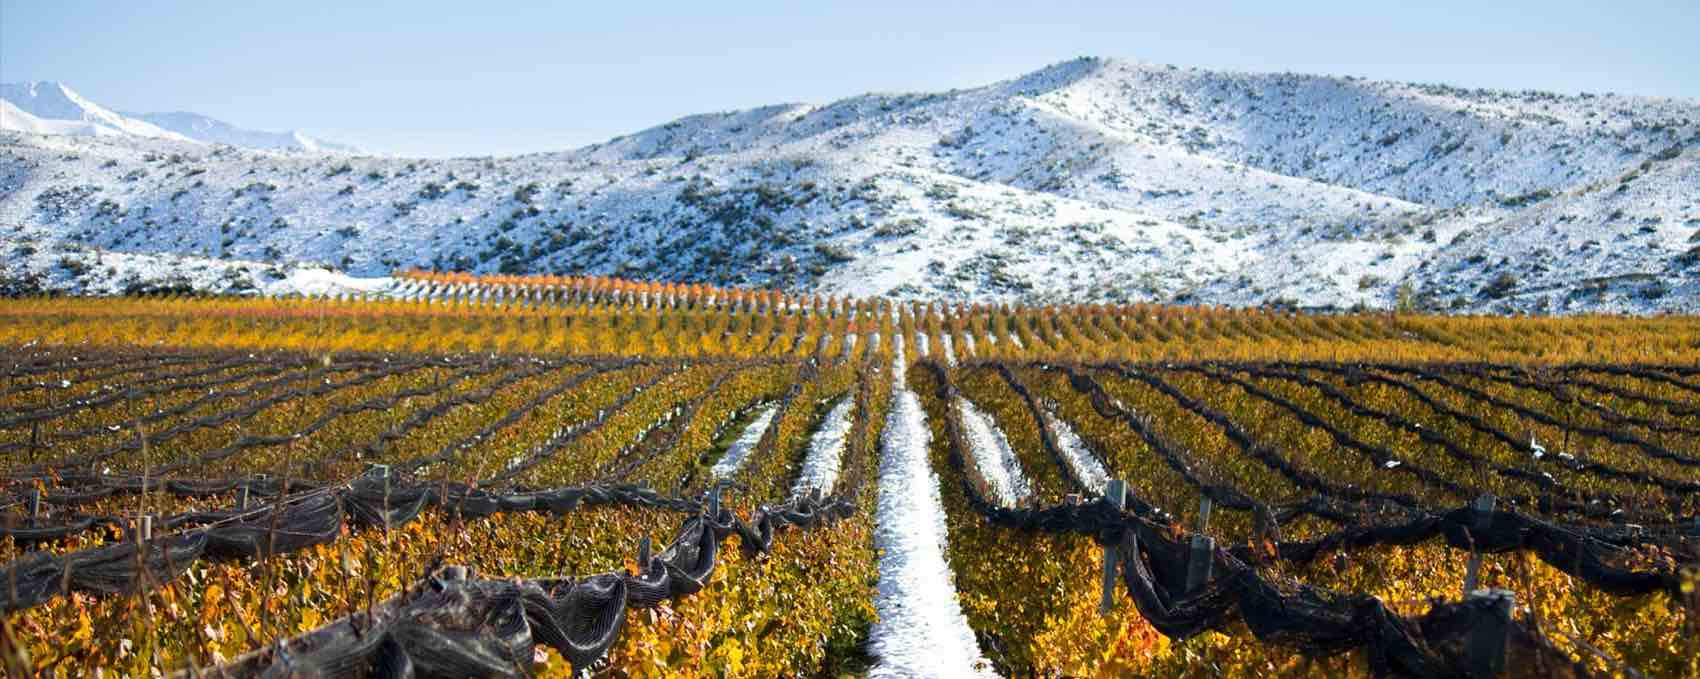 Snow and vine: Adrianna Vineyard great area for wine at almost 5,000 feet.